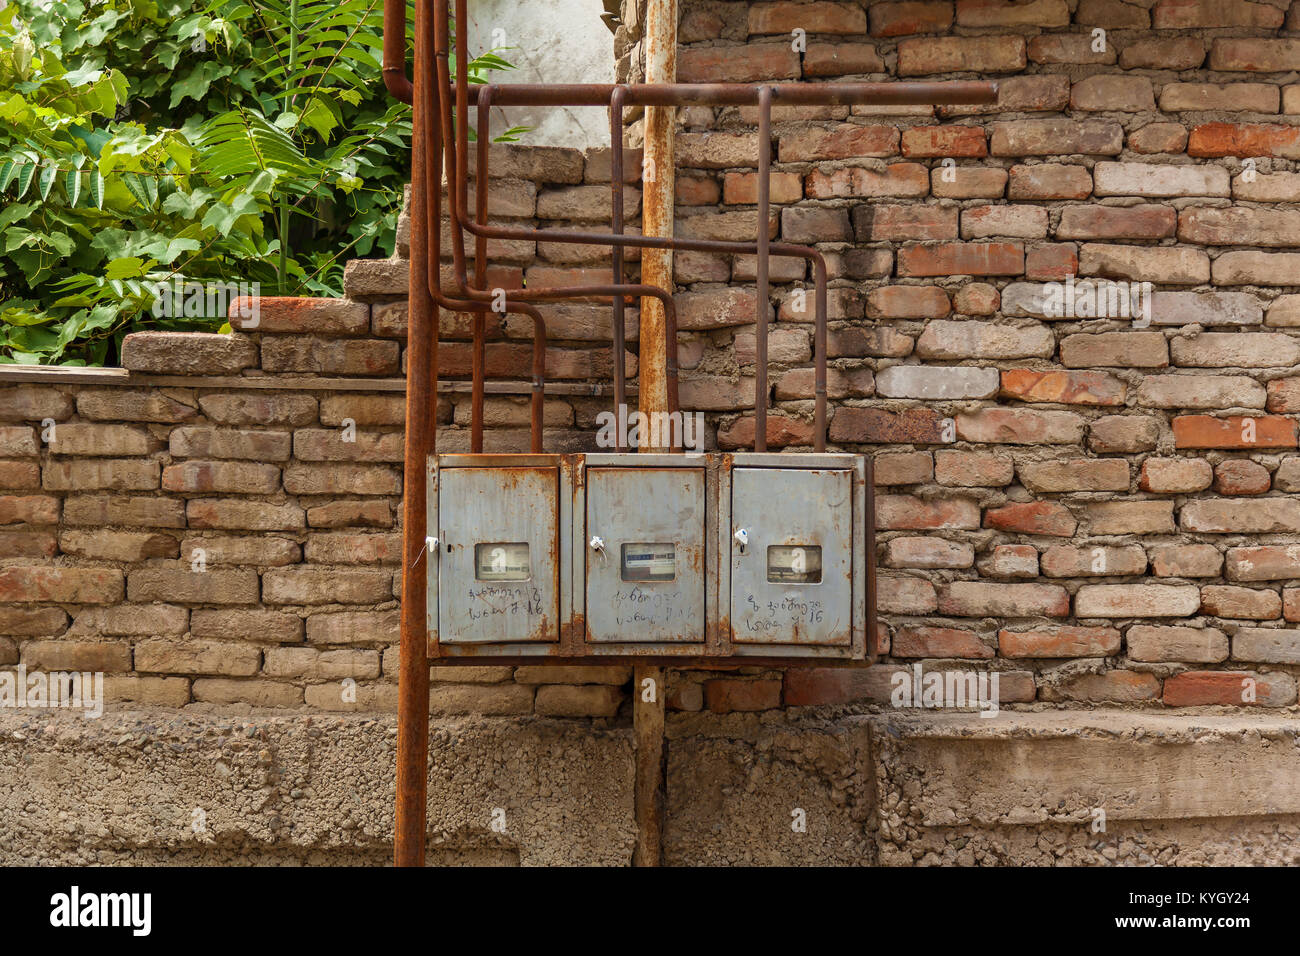 Electric meters. - Stock Image